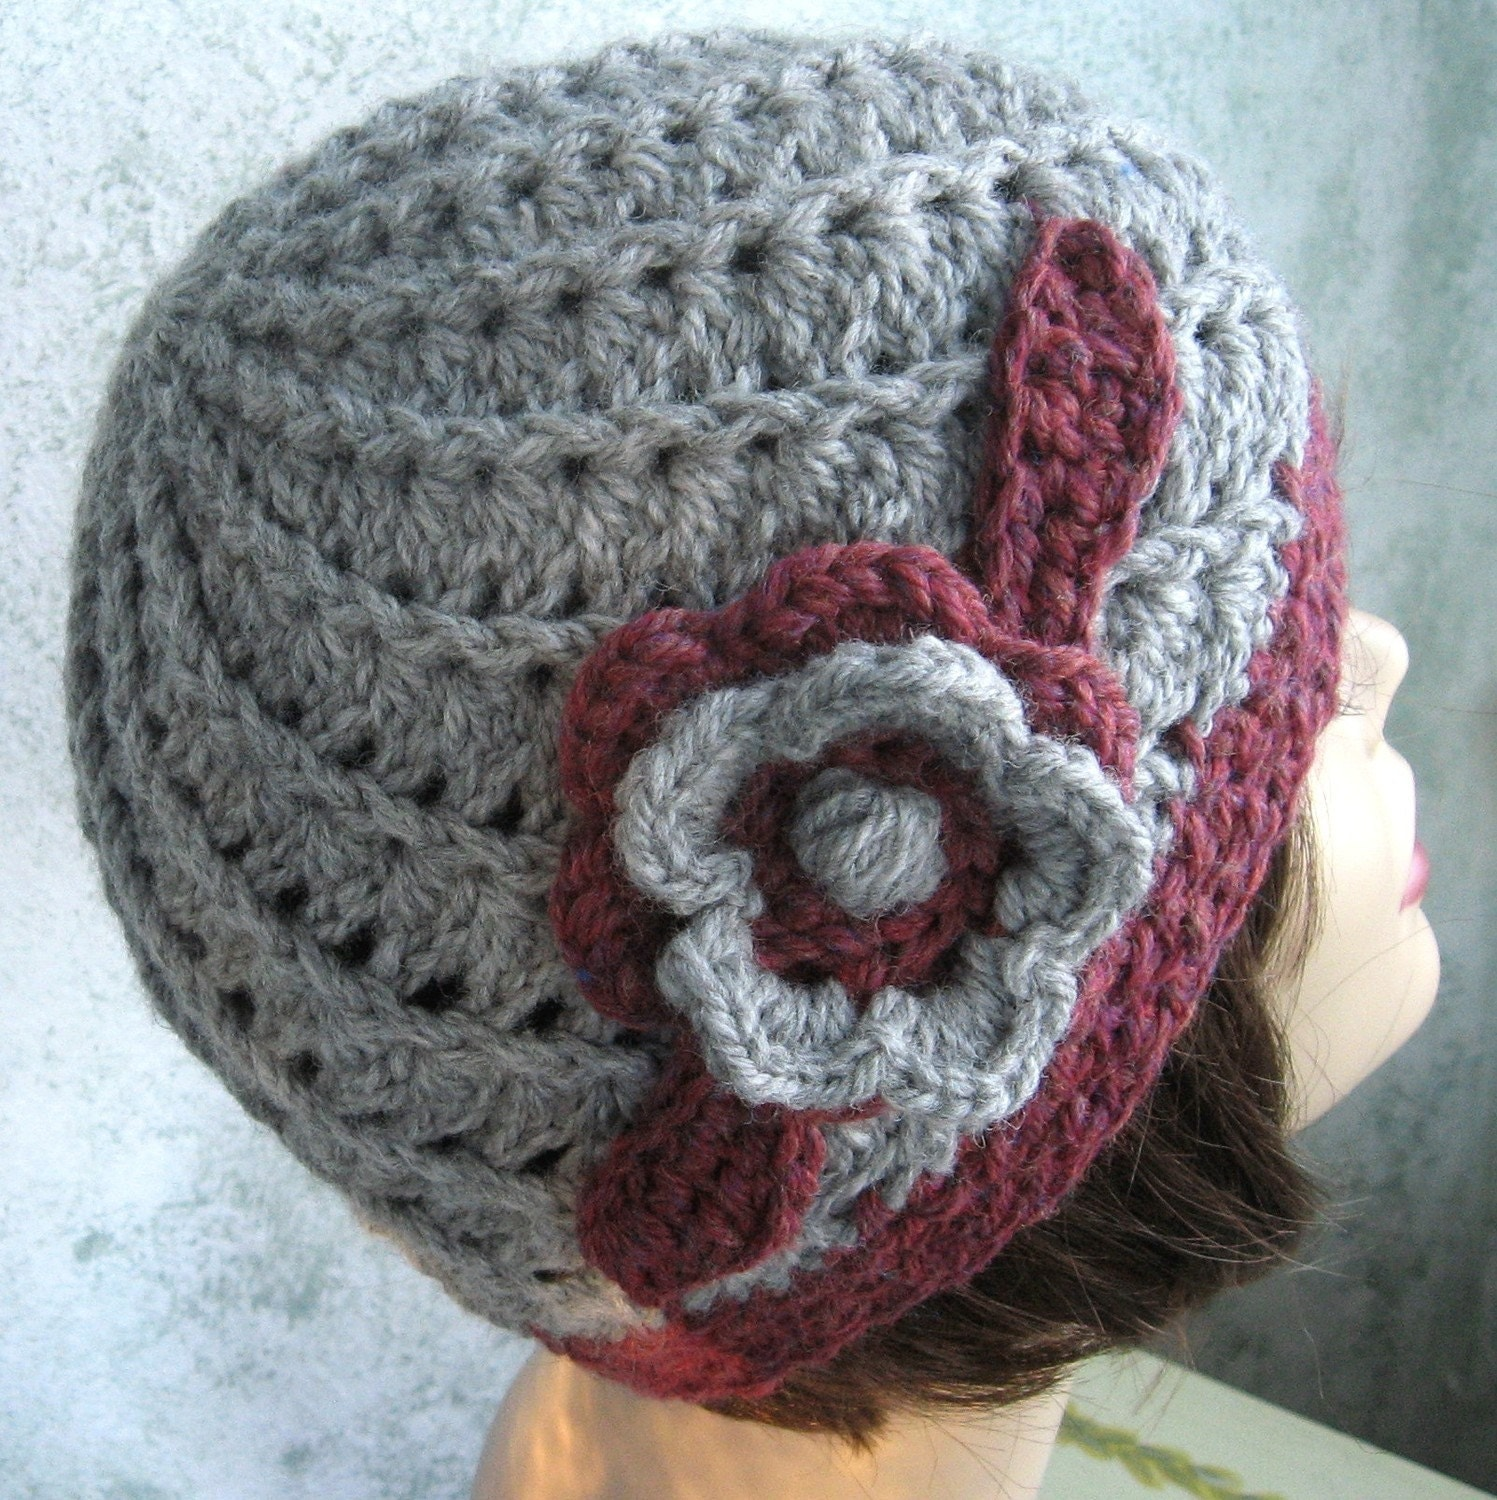 Crochet Hat Free Pattern Woman : Womens Crochet Hat Pattern Spiral Rib With Double Flower Trim